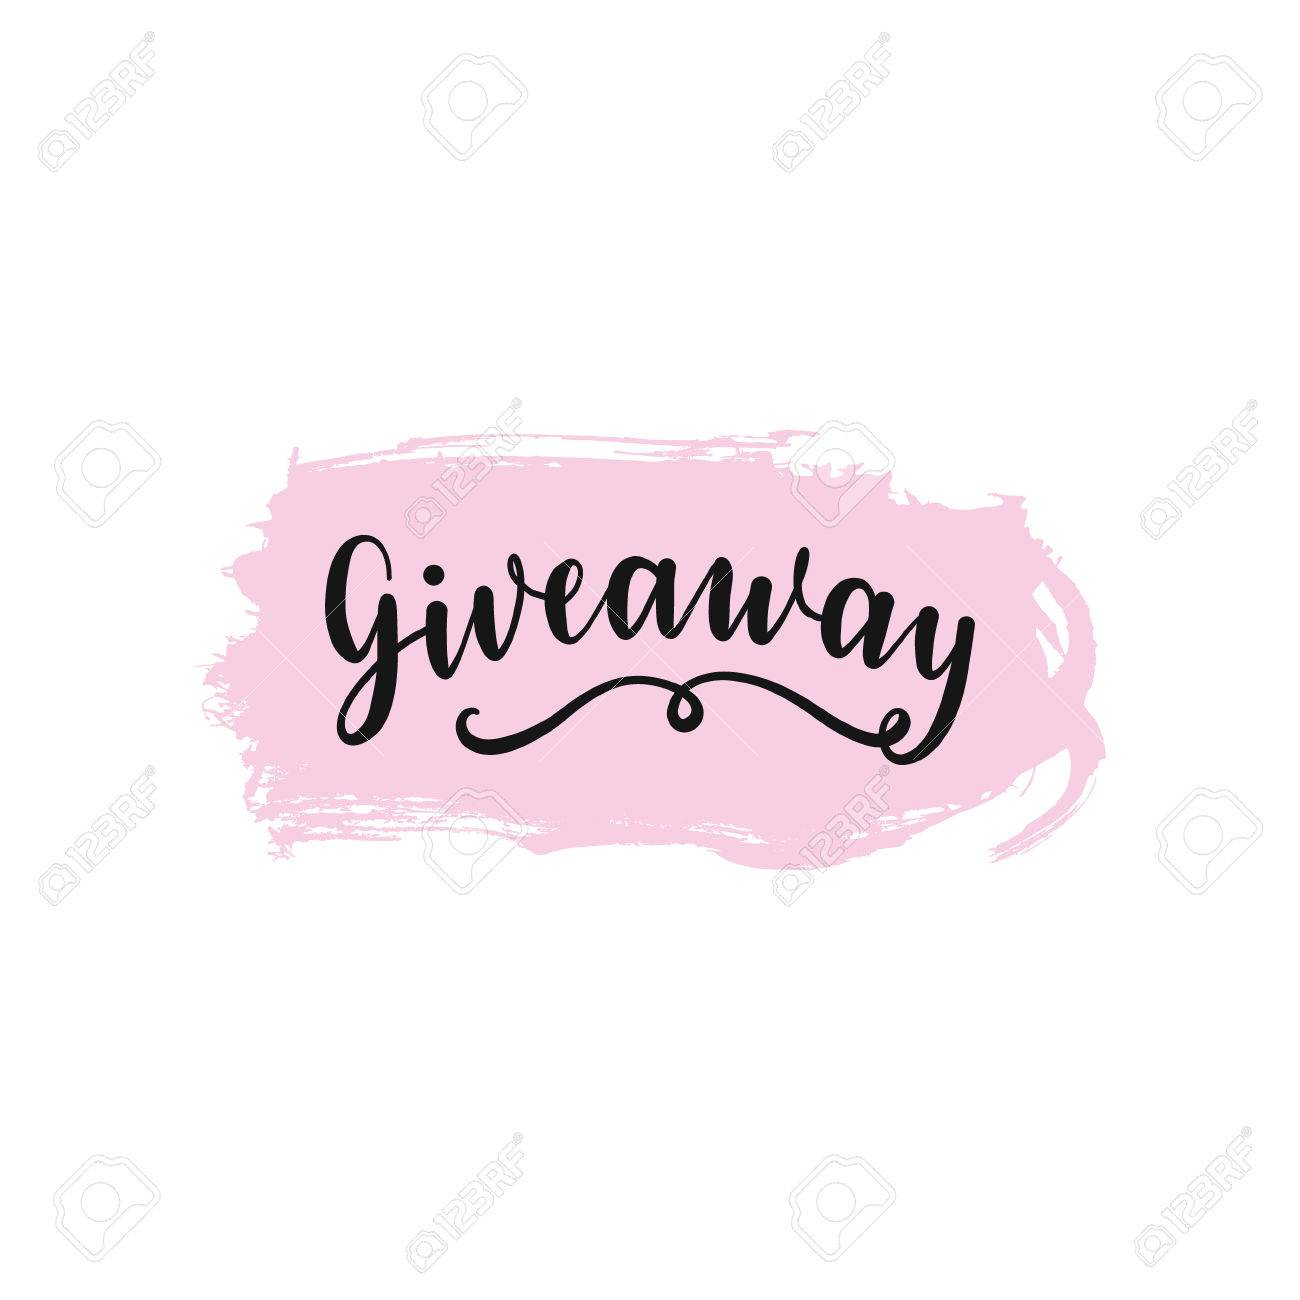 Giveaway Winner Award Illustration, Card For Promotional Products...  Royalty Free Cliparts, Vectors, And Stock Illustration. Image 85649036.